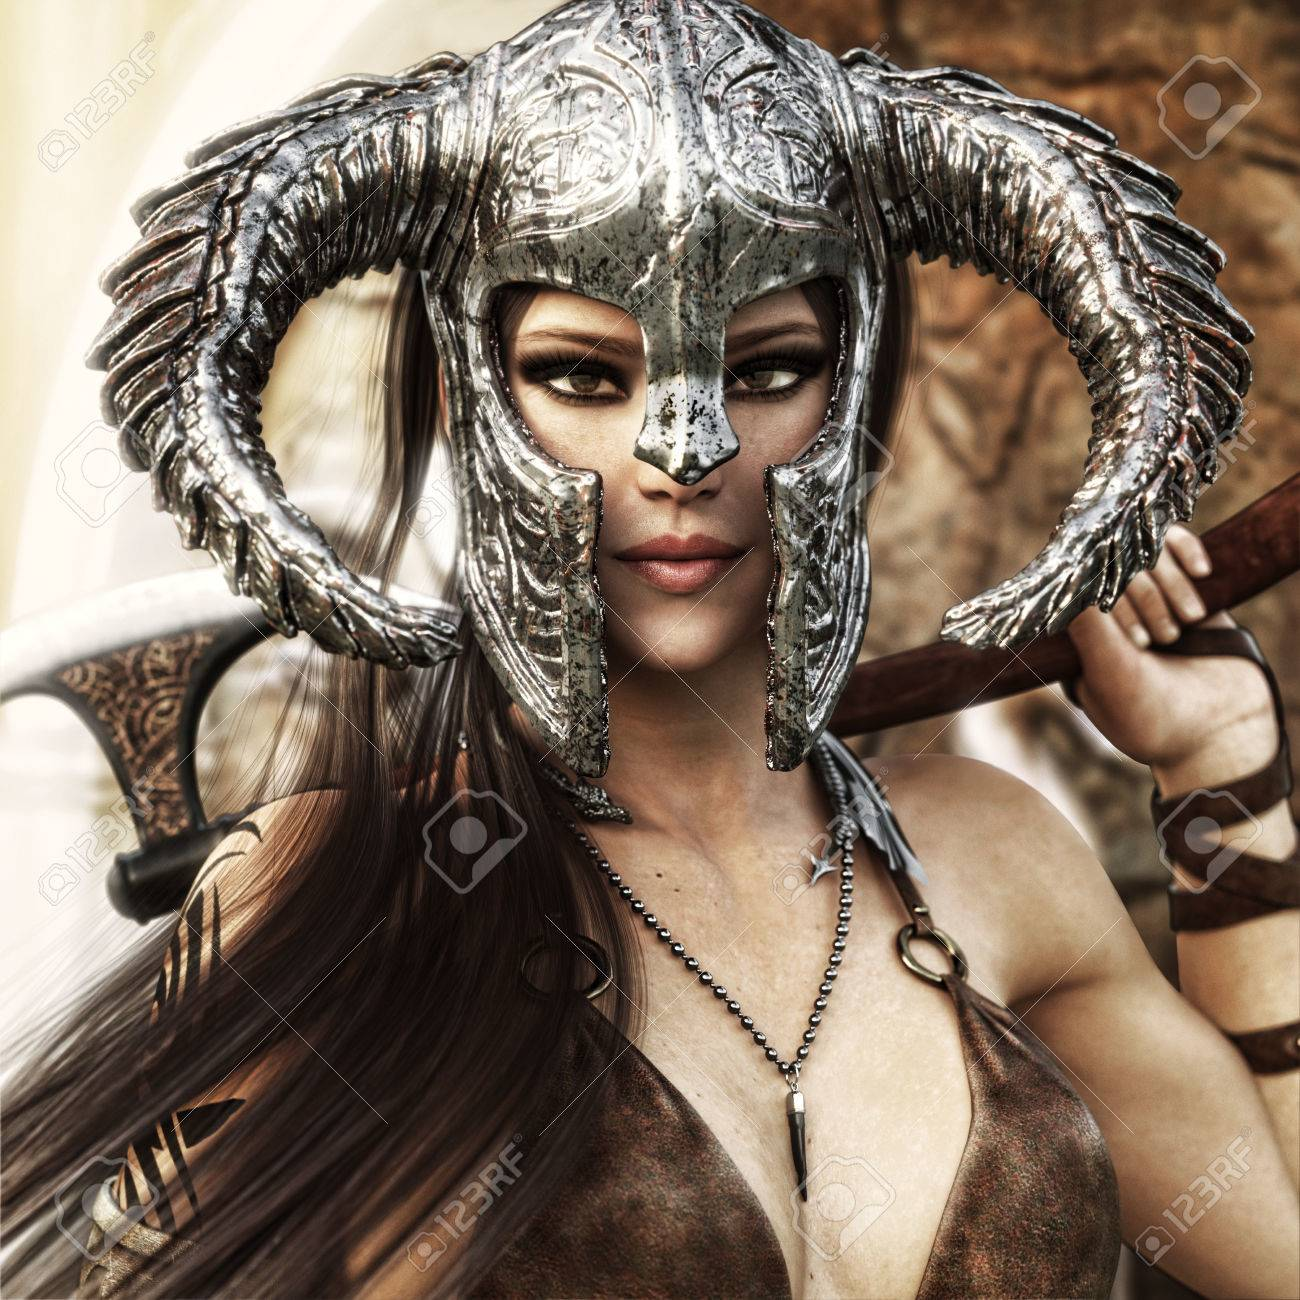 Beautiful and deadly fantasy warrior female wearing a traditional barbarian style costume. 3d rendering - 75508202